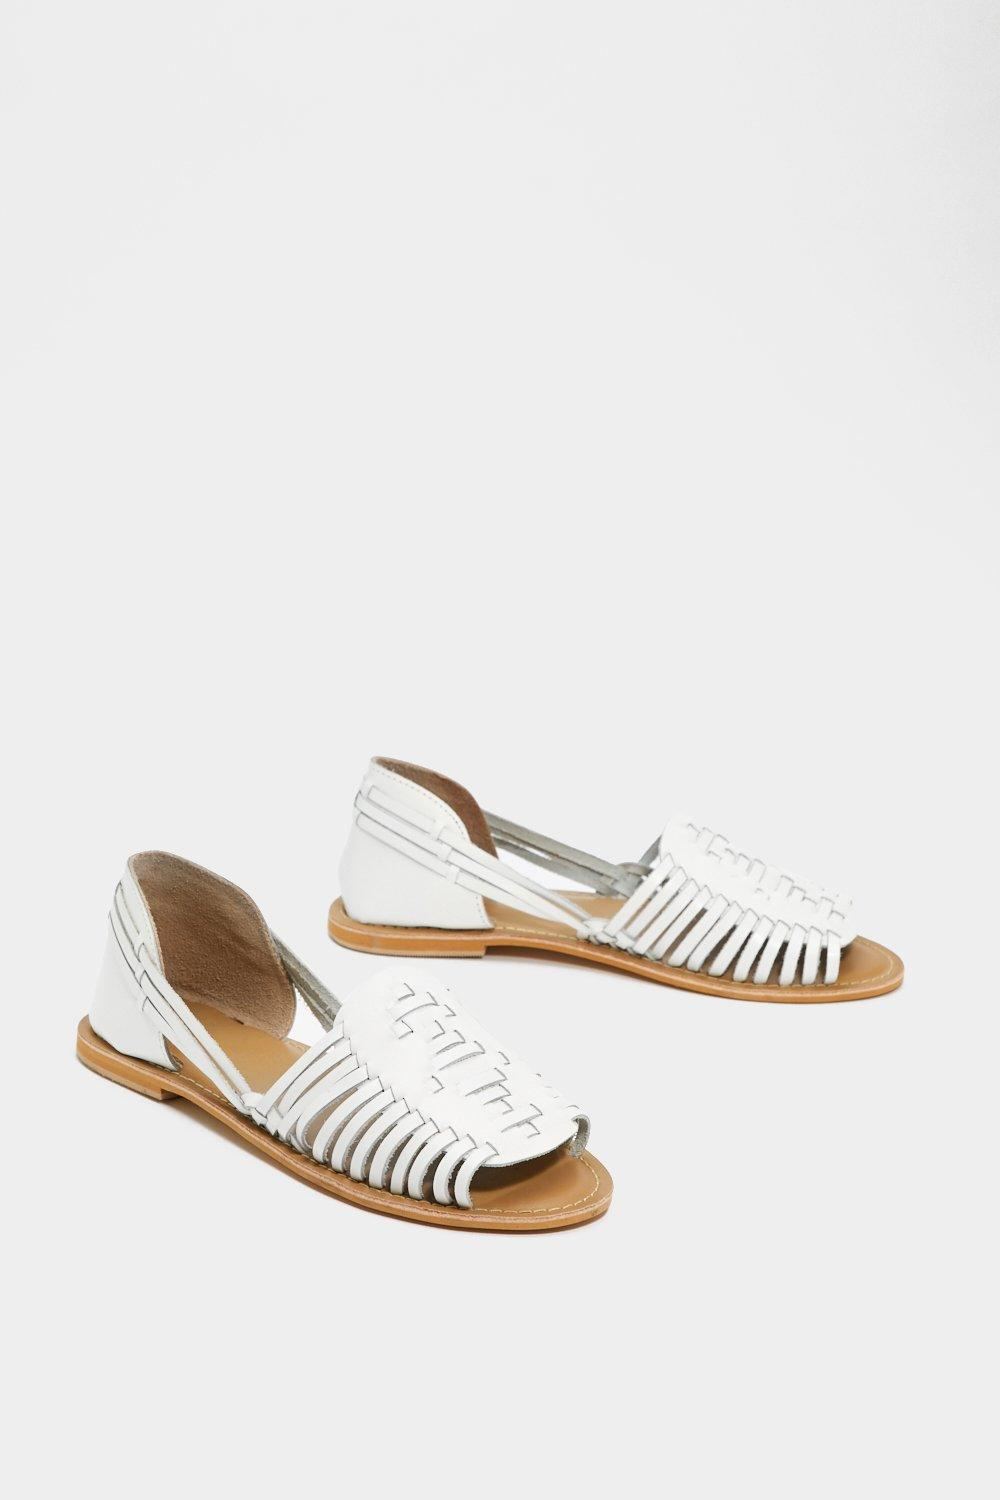 Woven You Long Time Leather Sandal clearance reliable clearance huge surprise cheap sale fast delivery cheap sale new arrival S5hjX